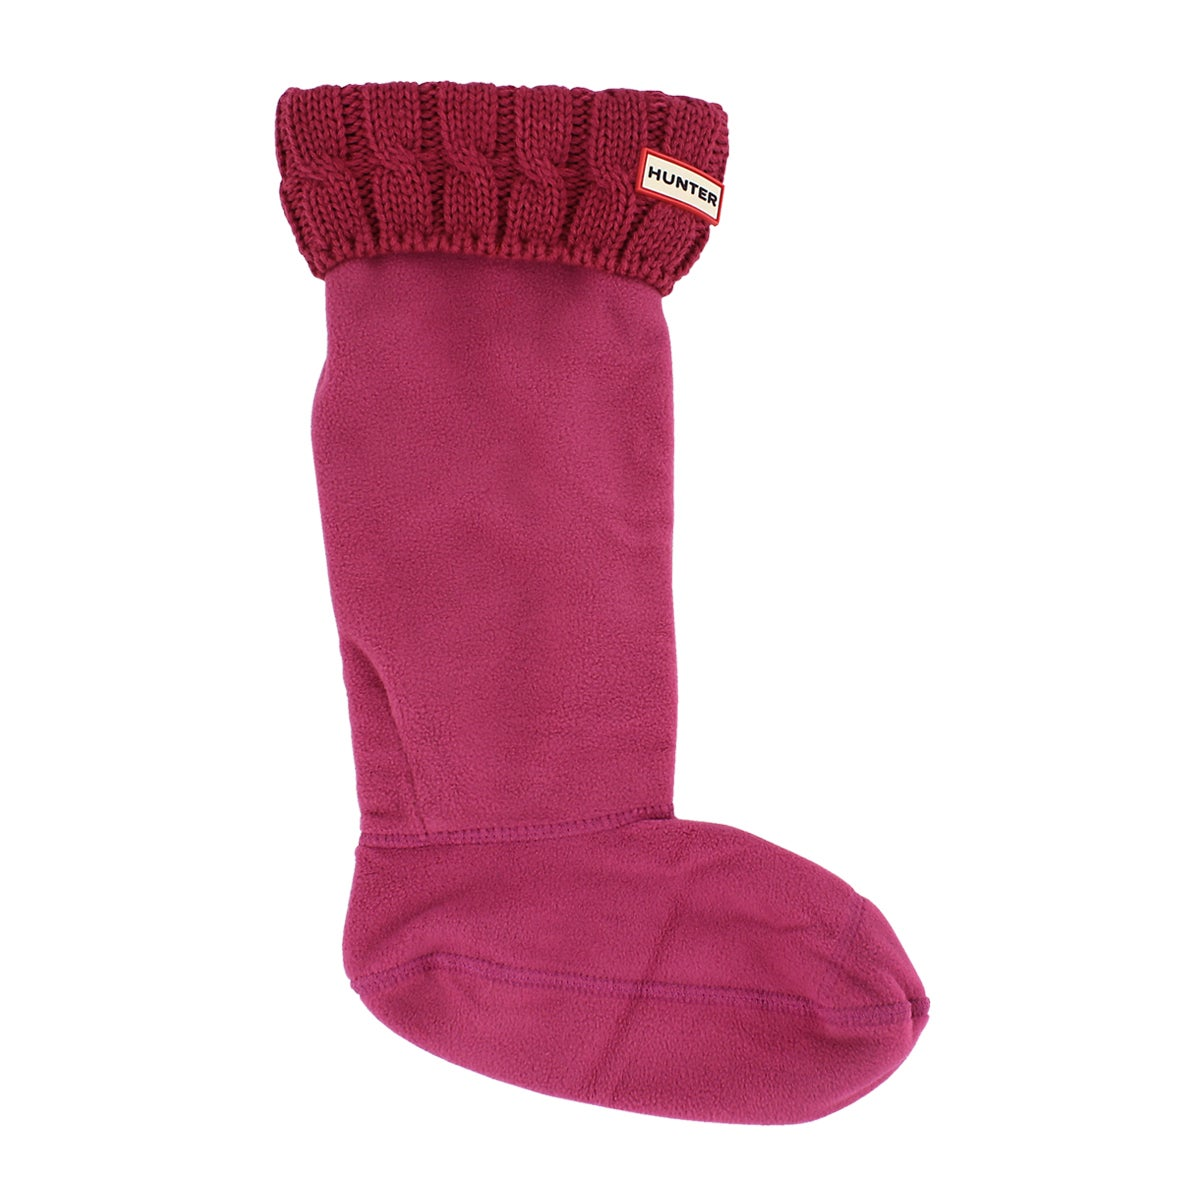 Lds 6 Stitch Cable drk pink boot sock